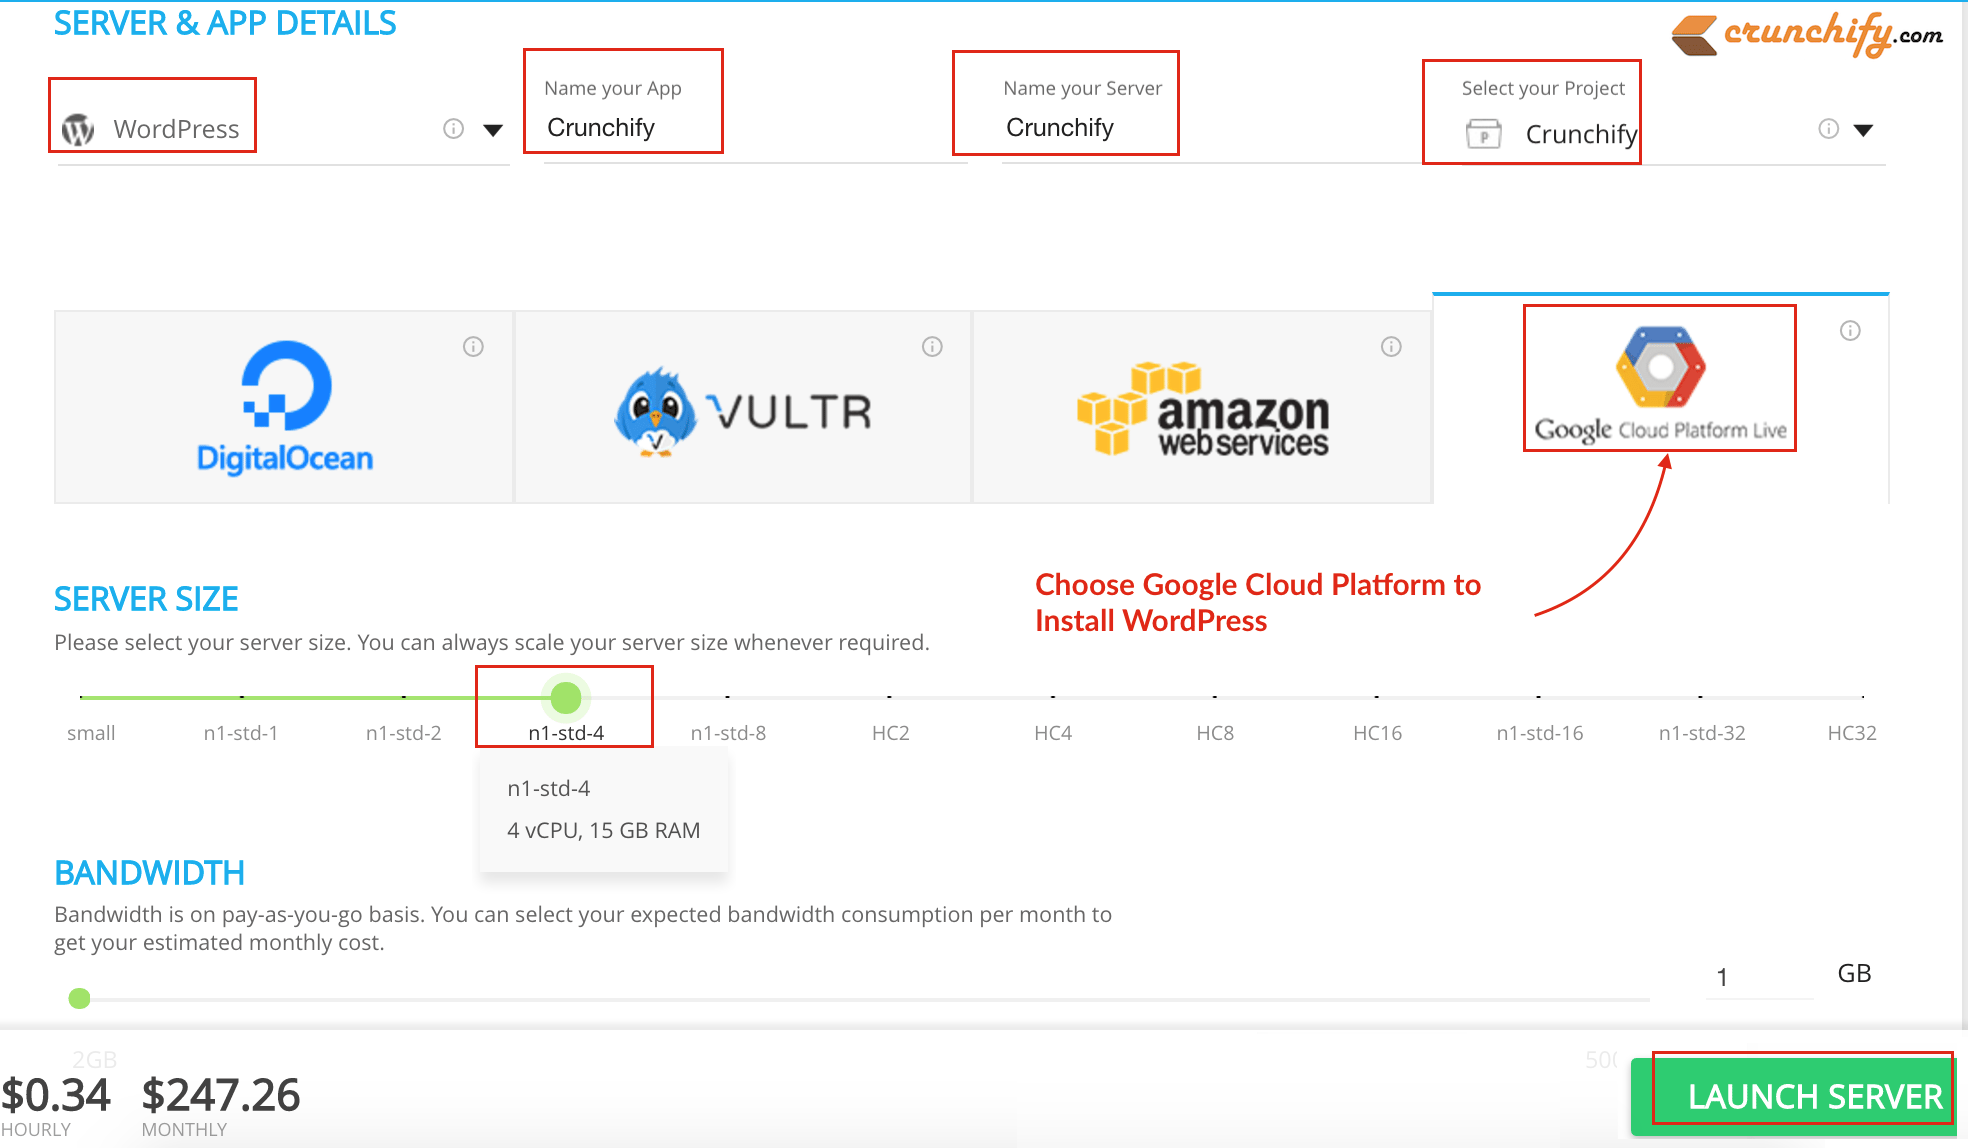 Choose Google Cloud Platform to Install WordPress